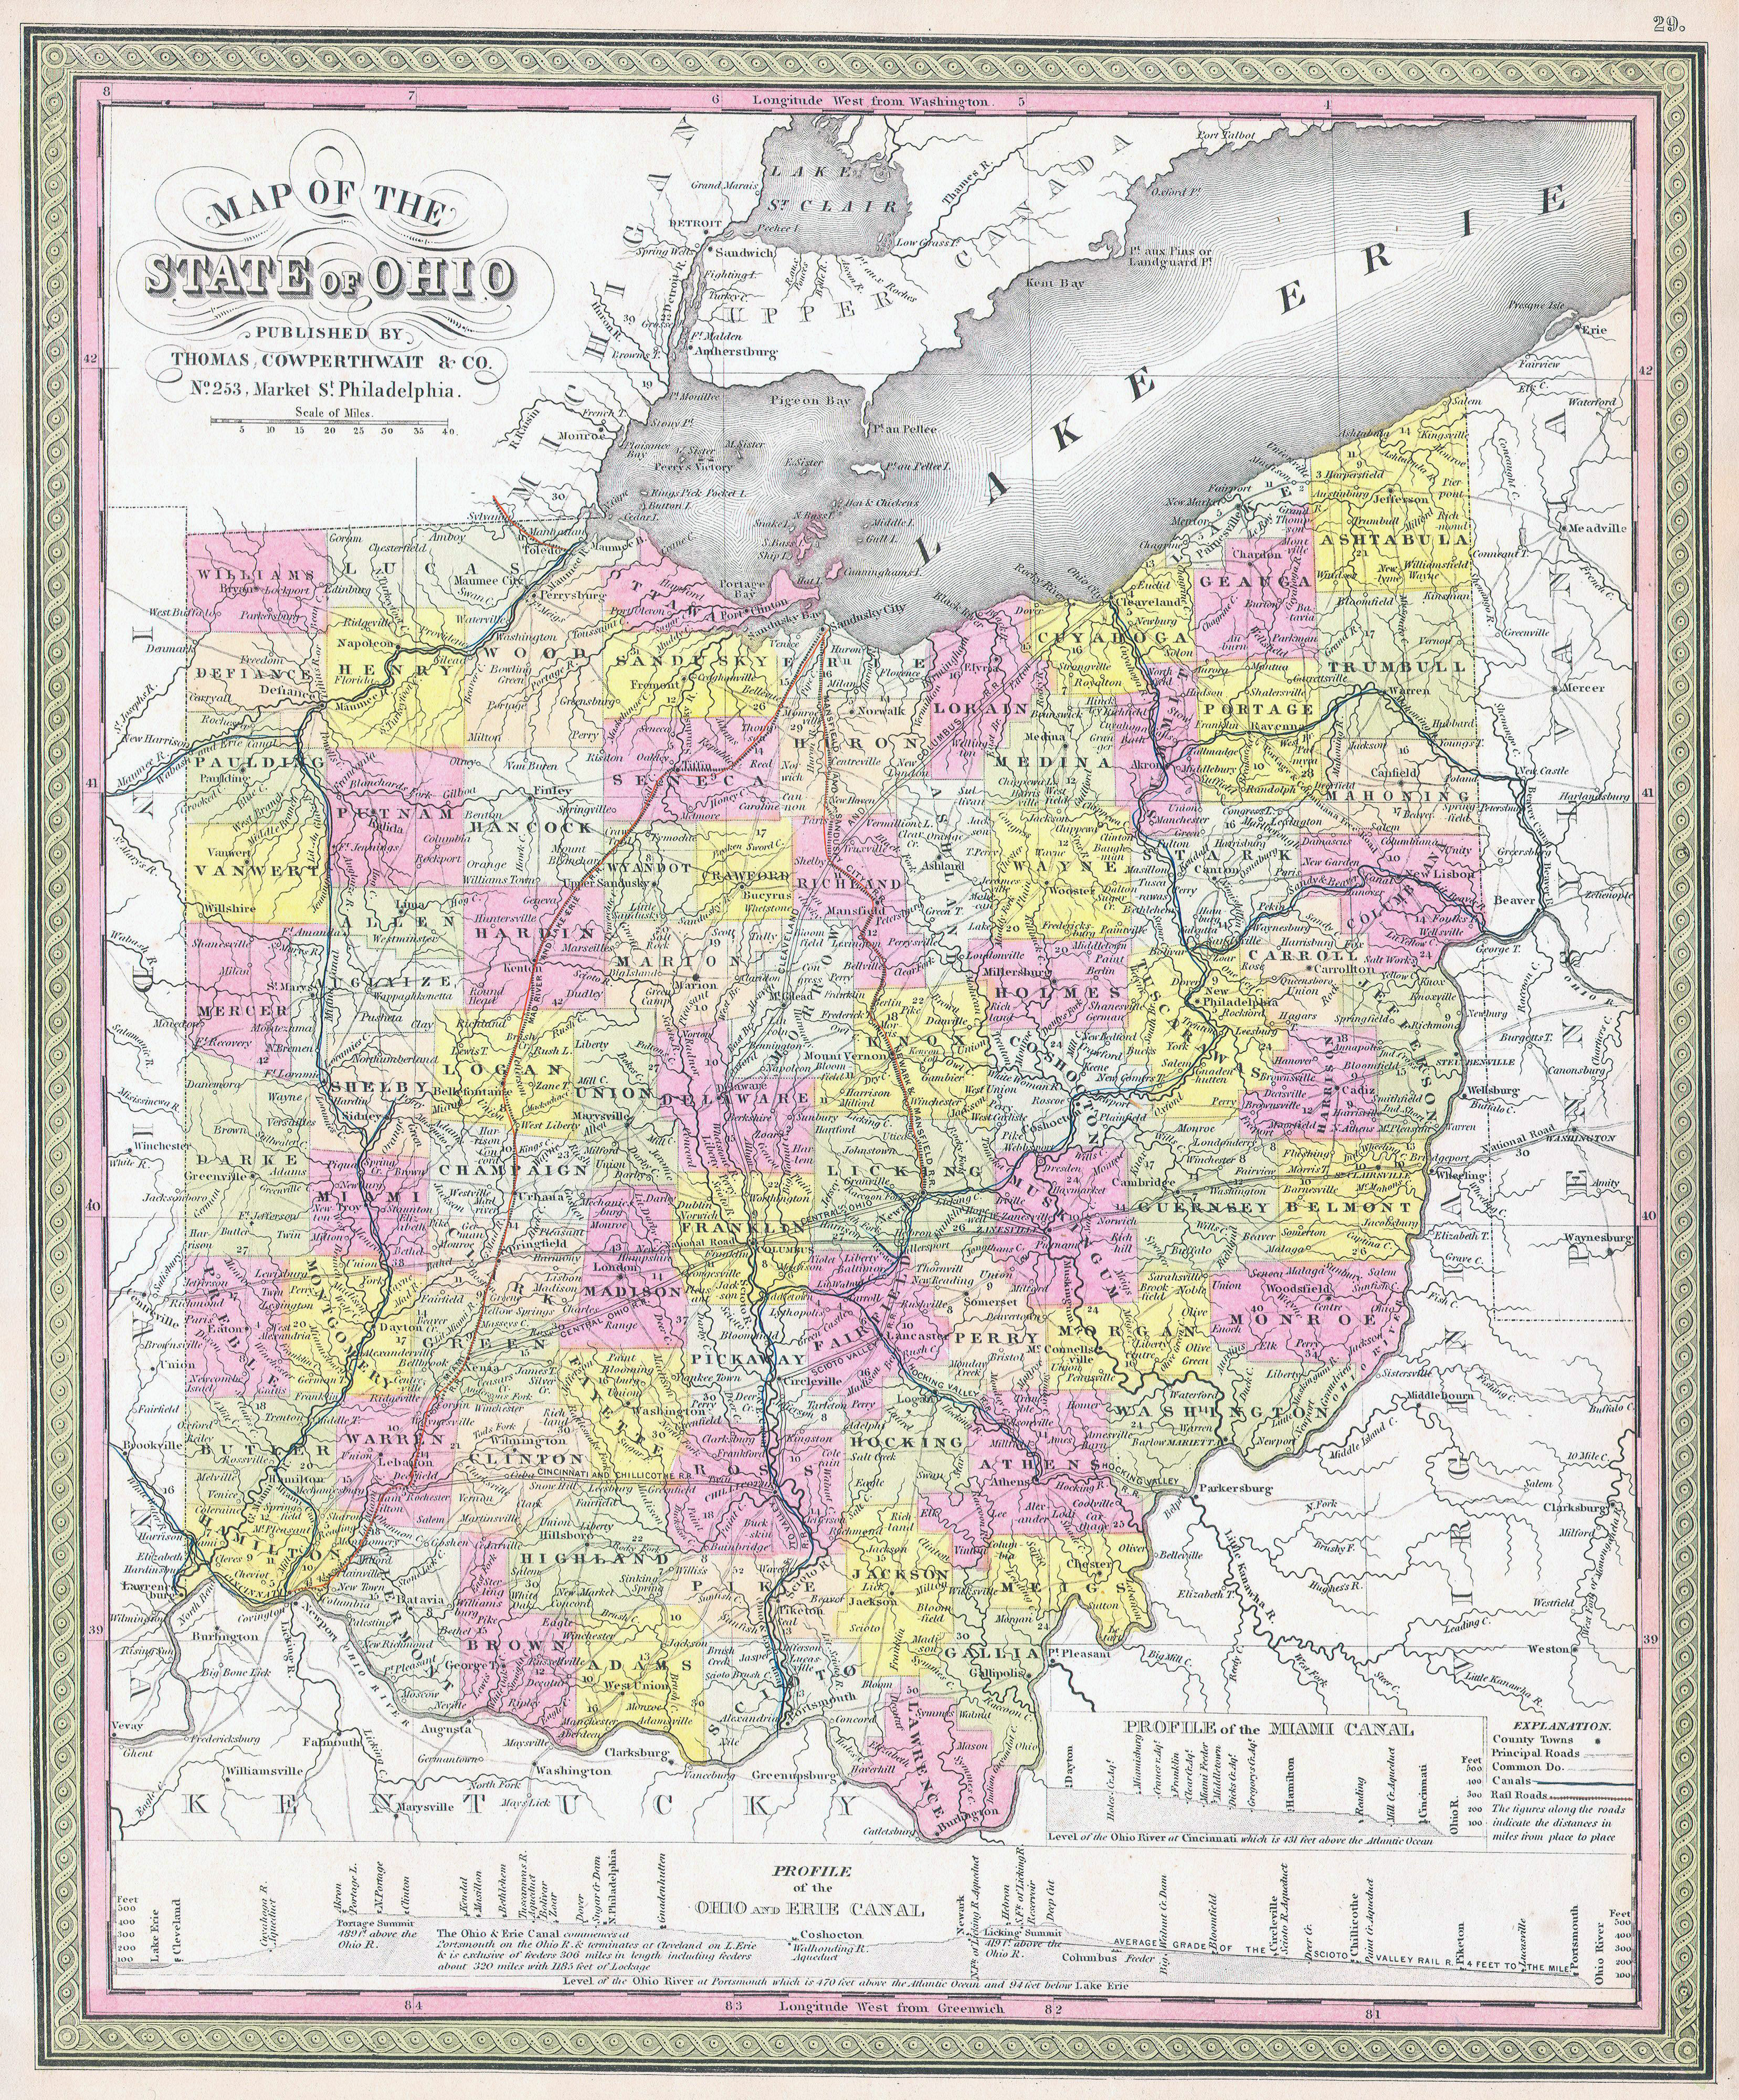 Large Detailed Old Administrative Map Of Ohio State - Detailed map of ohio